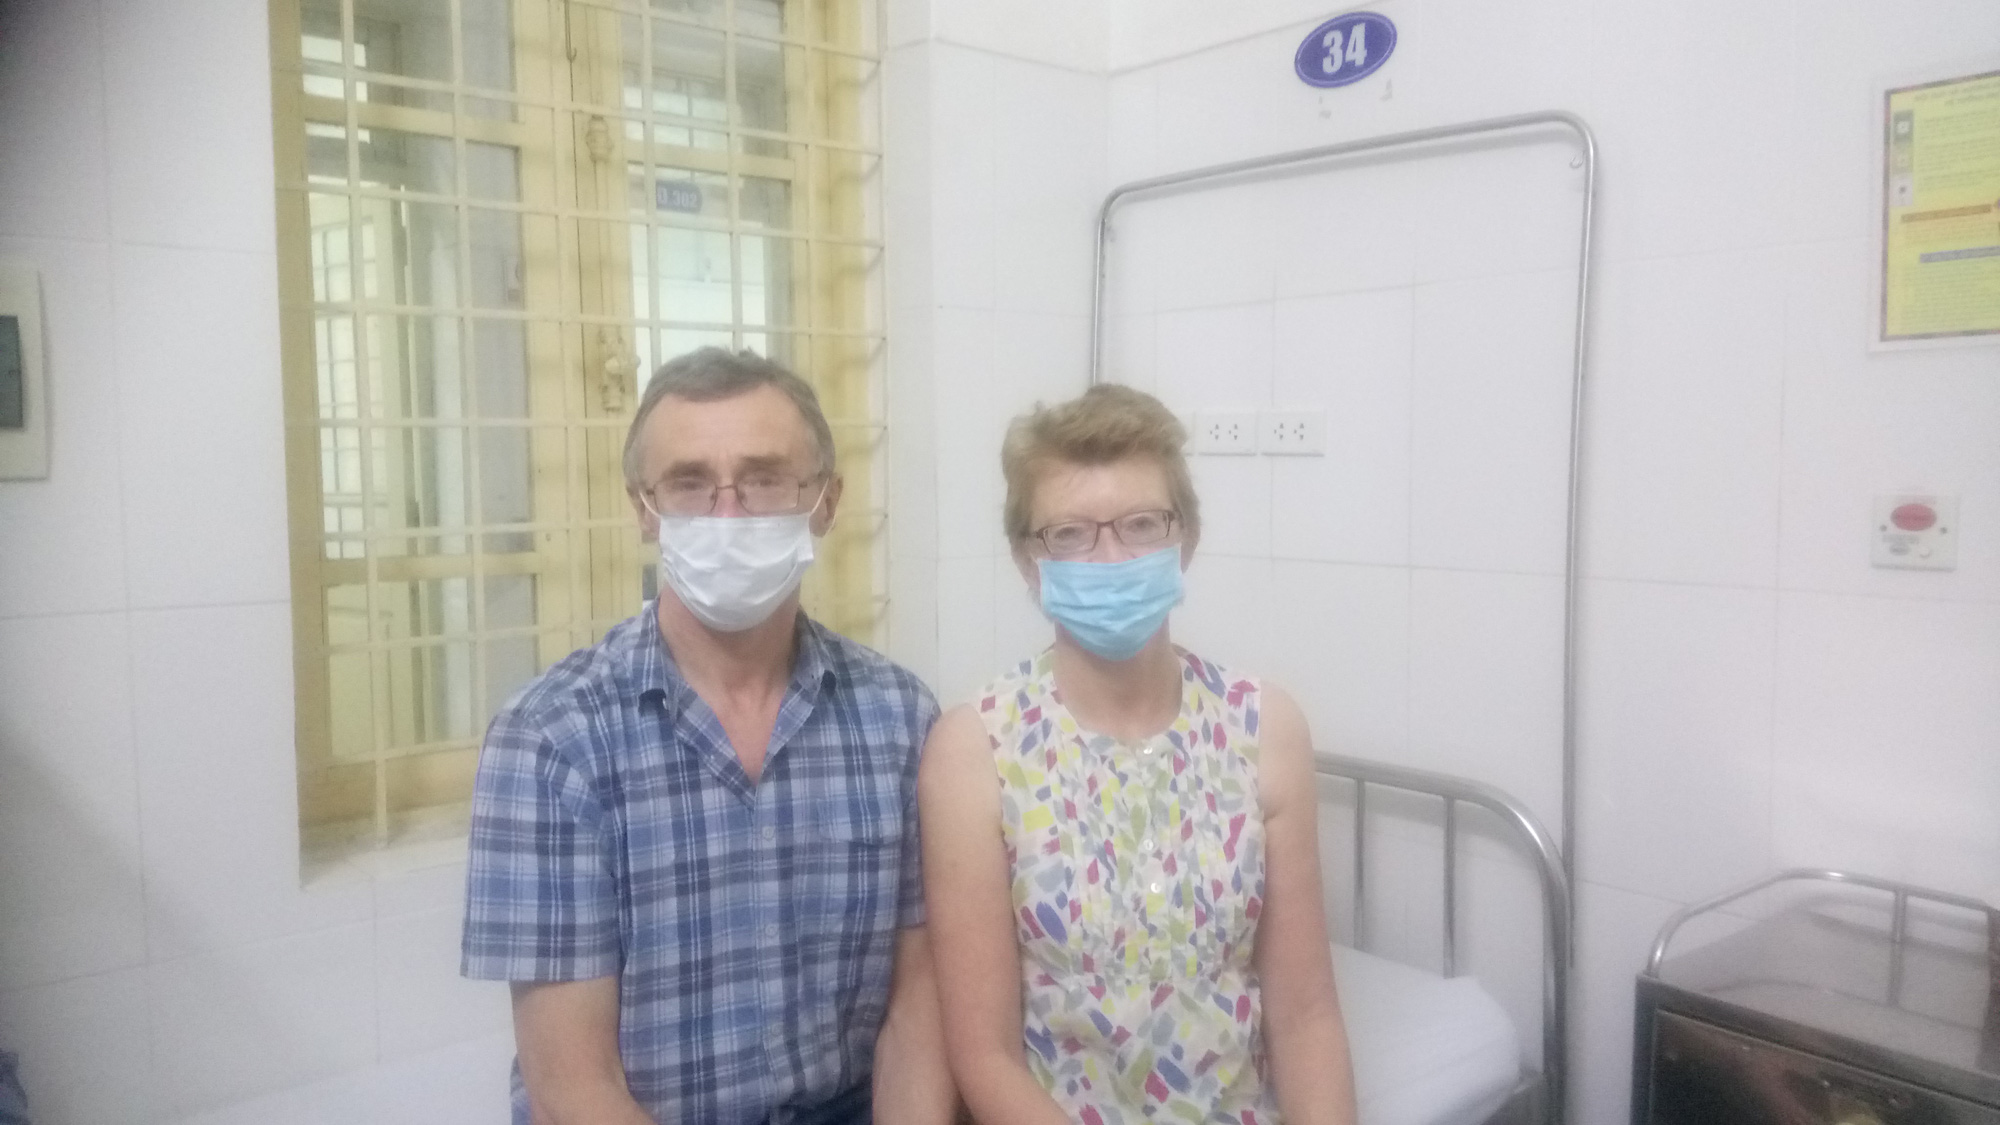 British couple praises quarantine condition at Hanoi hospital in thank-you letter